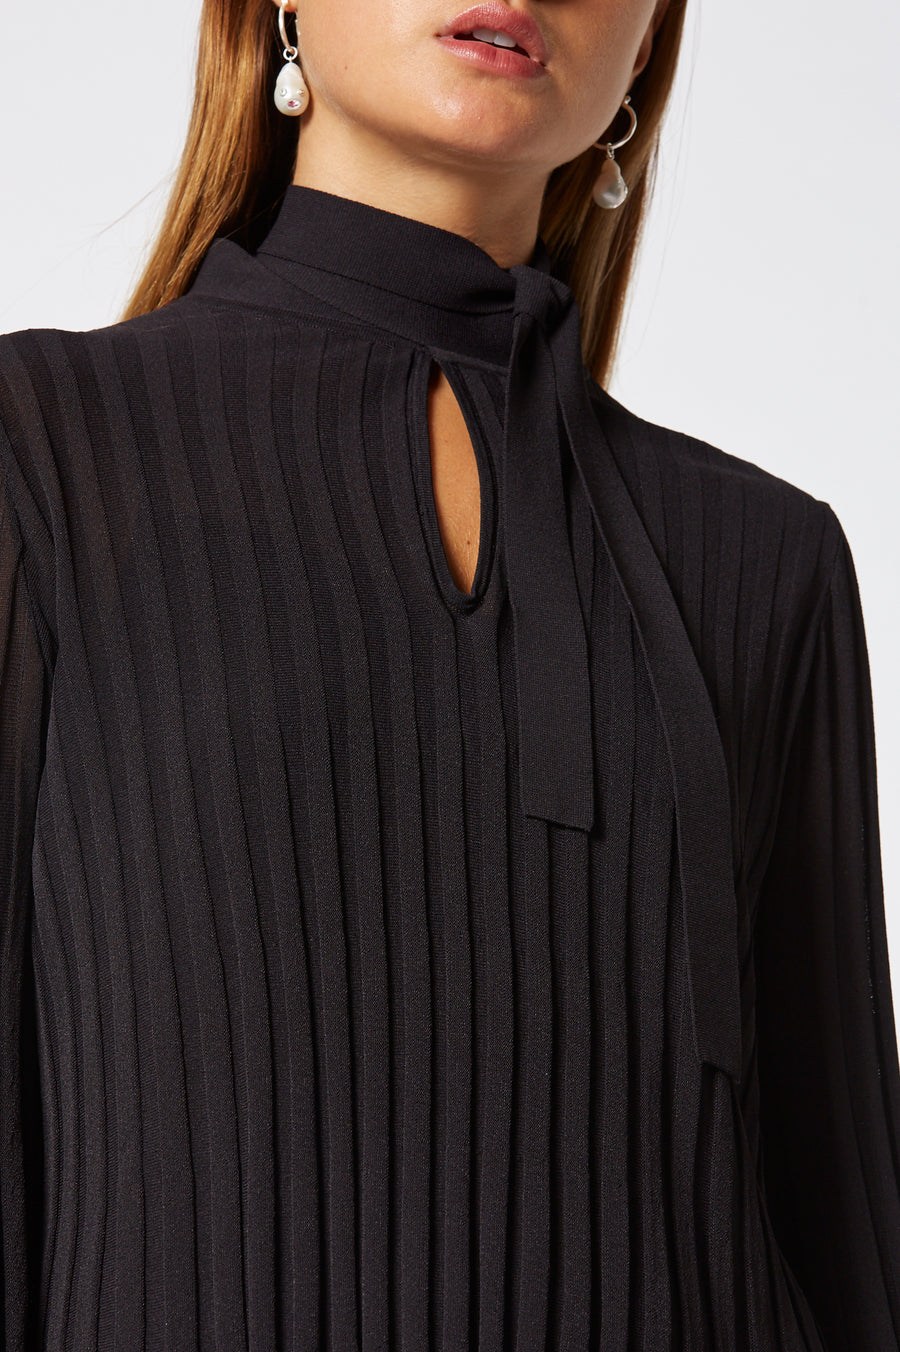 Pleated Rib Tie Neck Top, natural pleat, tie neck, top button fastening, peplum cuffs, color chocolate